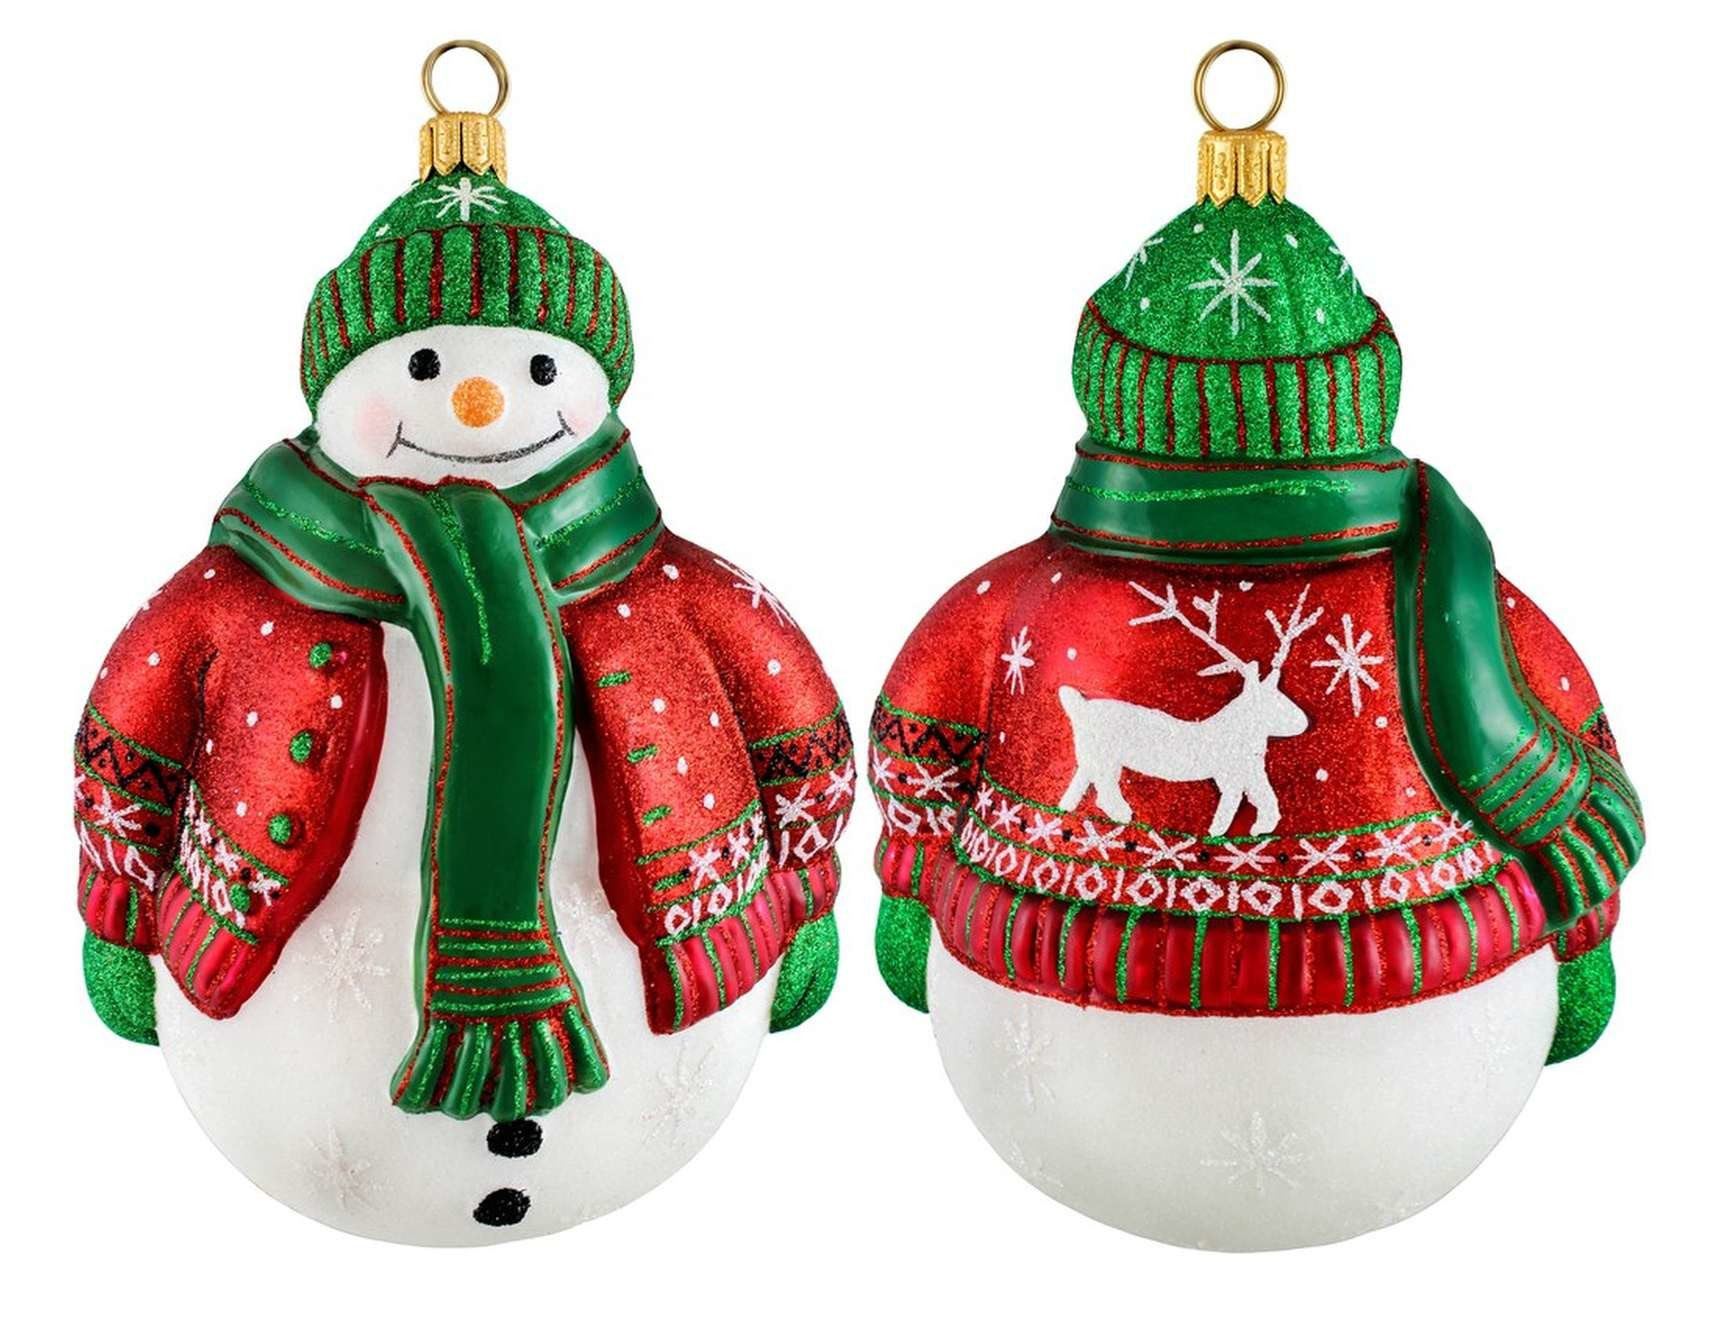 Christmas ornament Sets New 16 Best Glass Christmas ornaments Bulbs & ornament Sets Of Fresh 41 Models Christmas ornament Sets